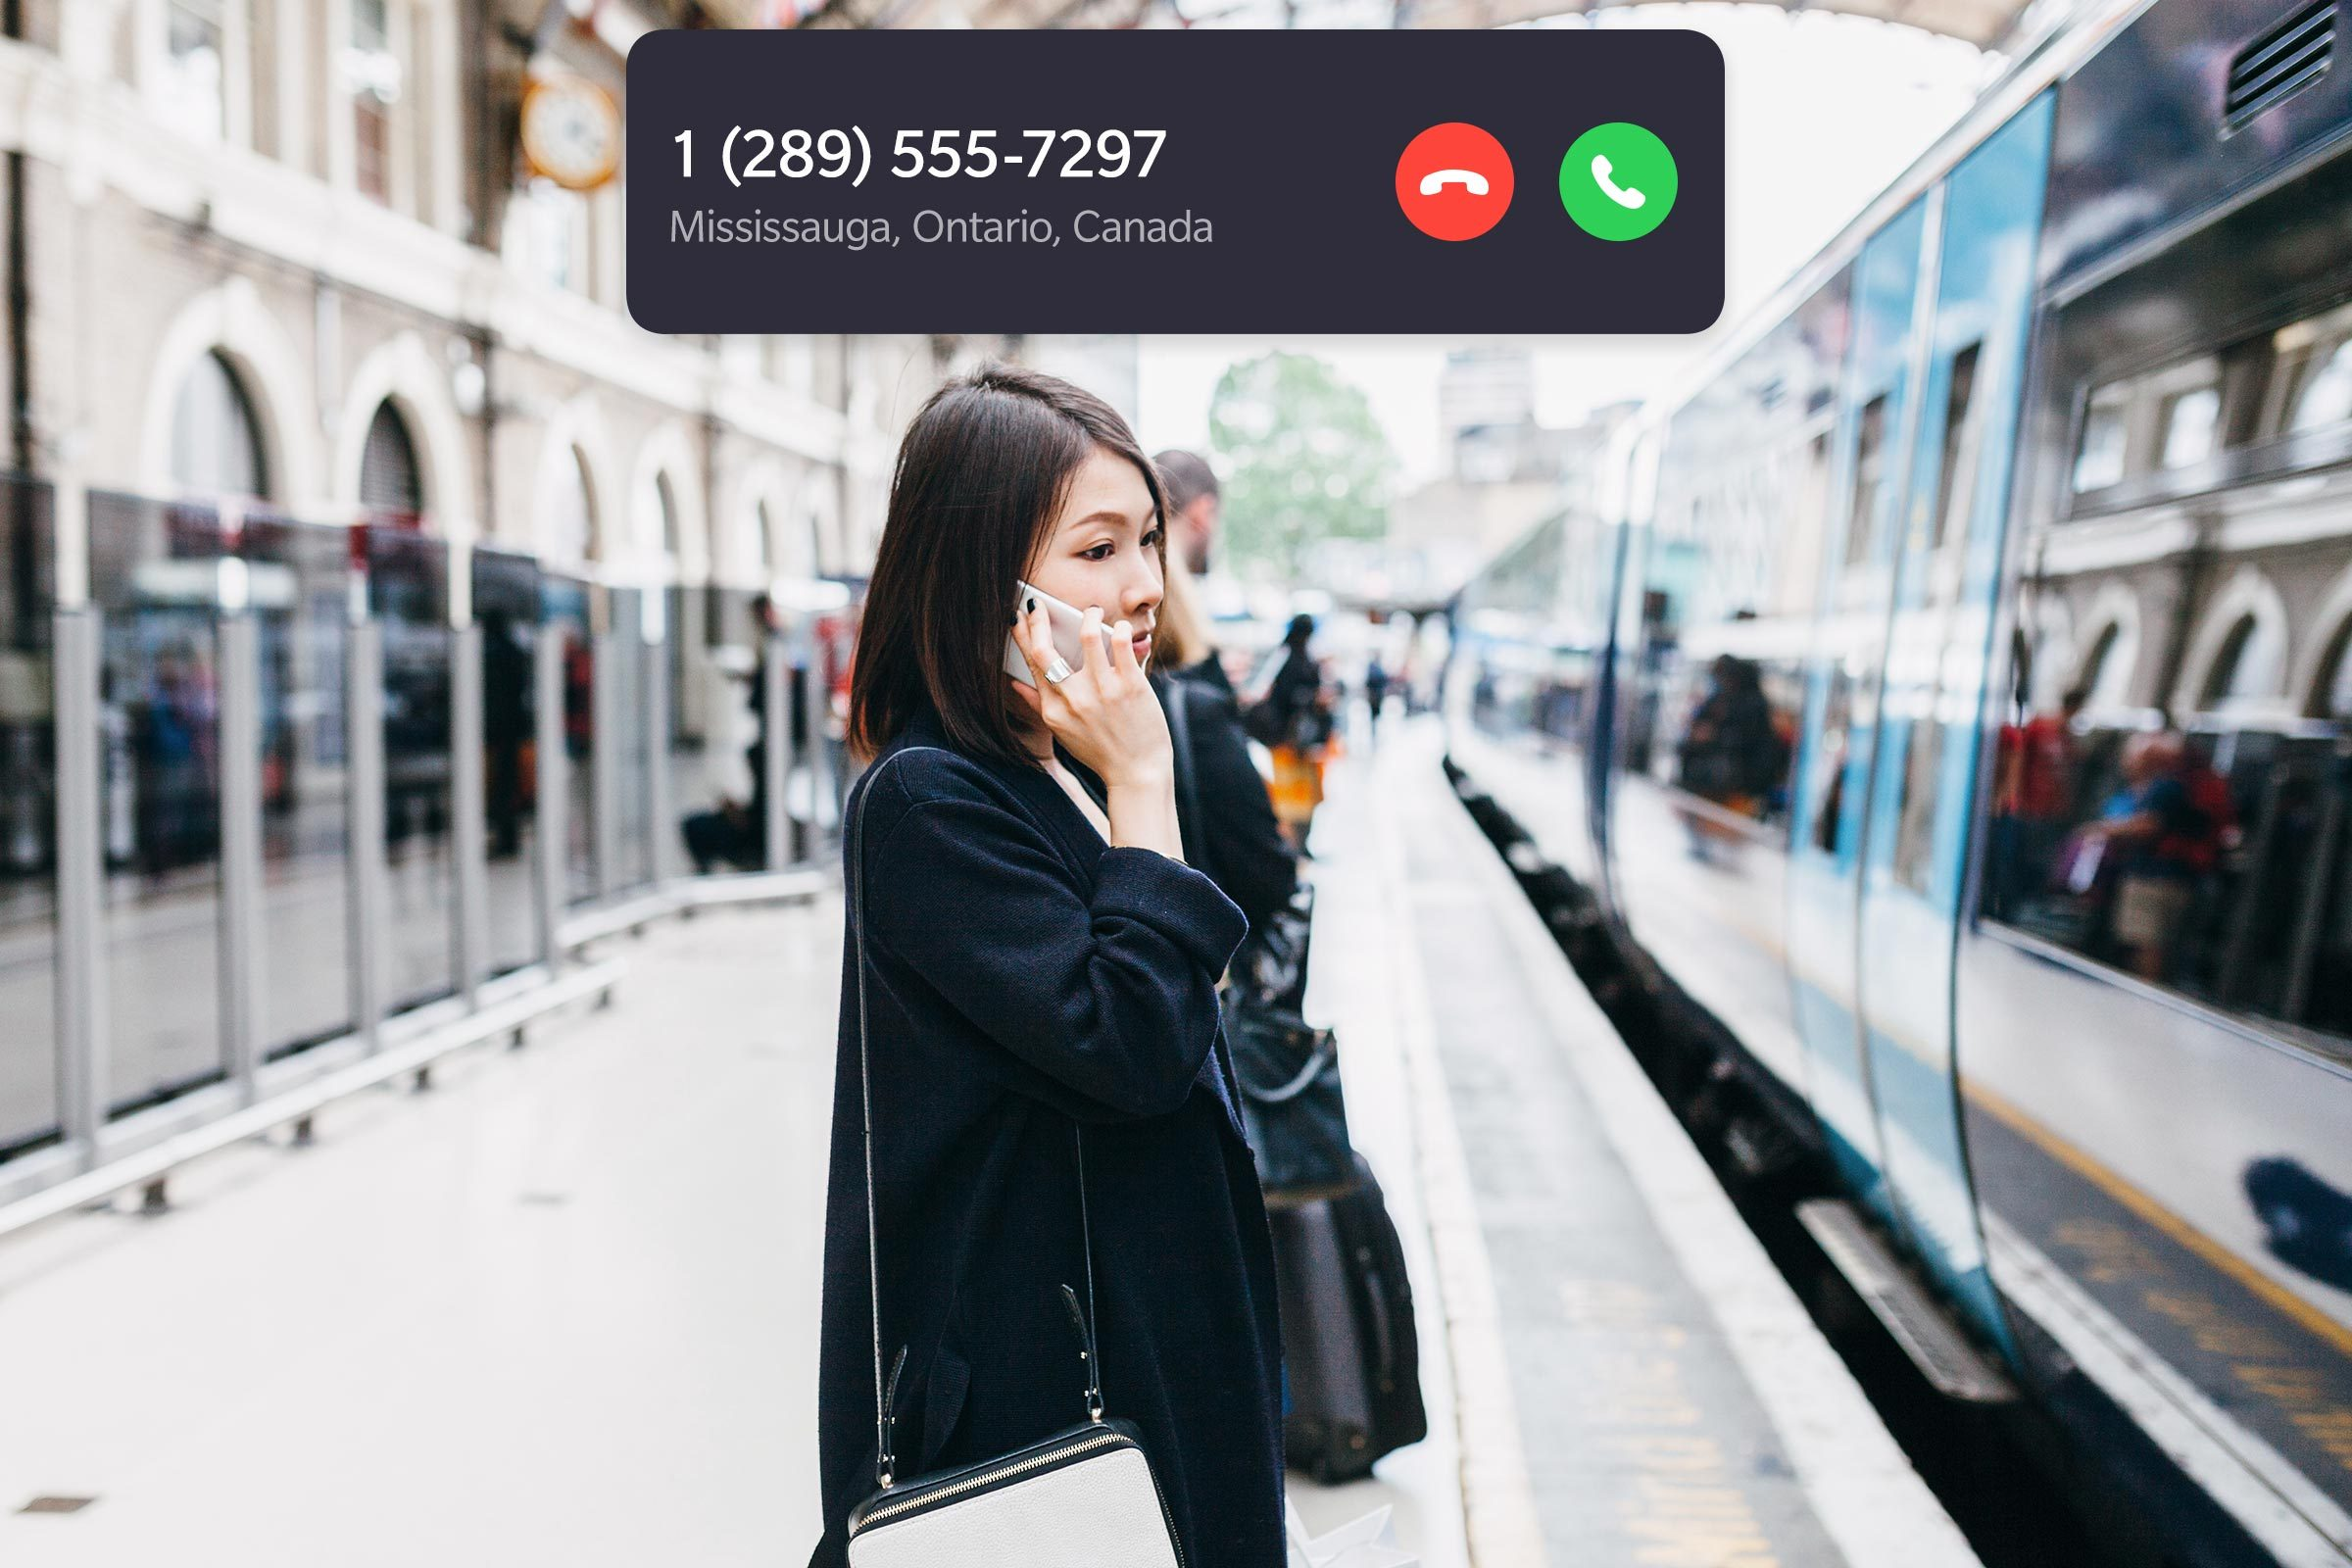 woman on the phone with incoming call interface overlay